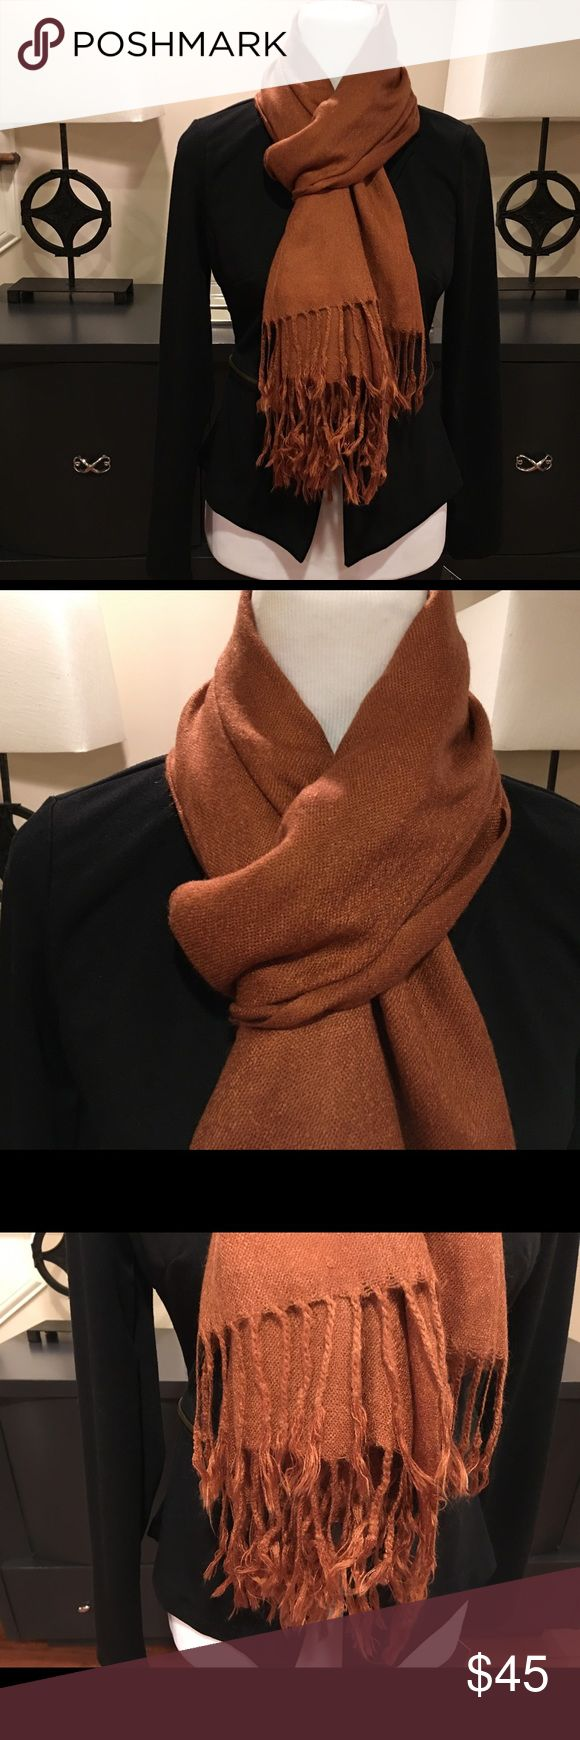 Pashmina Scarf Up for sale is a Unisex Pashmina Scarf.  This burnt orange Scarf has never been worn, made of a Cashmere Blend & is a classy accent to any outfit, coat, or tee. The addition of the Seta adds a nice sheen to your pashmina. It's luxurious and warm and still lightweight Pashmina Accessories Scarves & Wraps